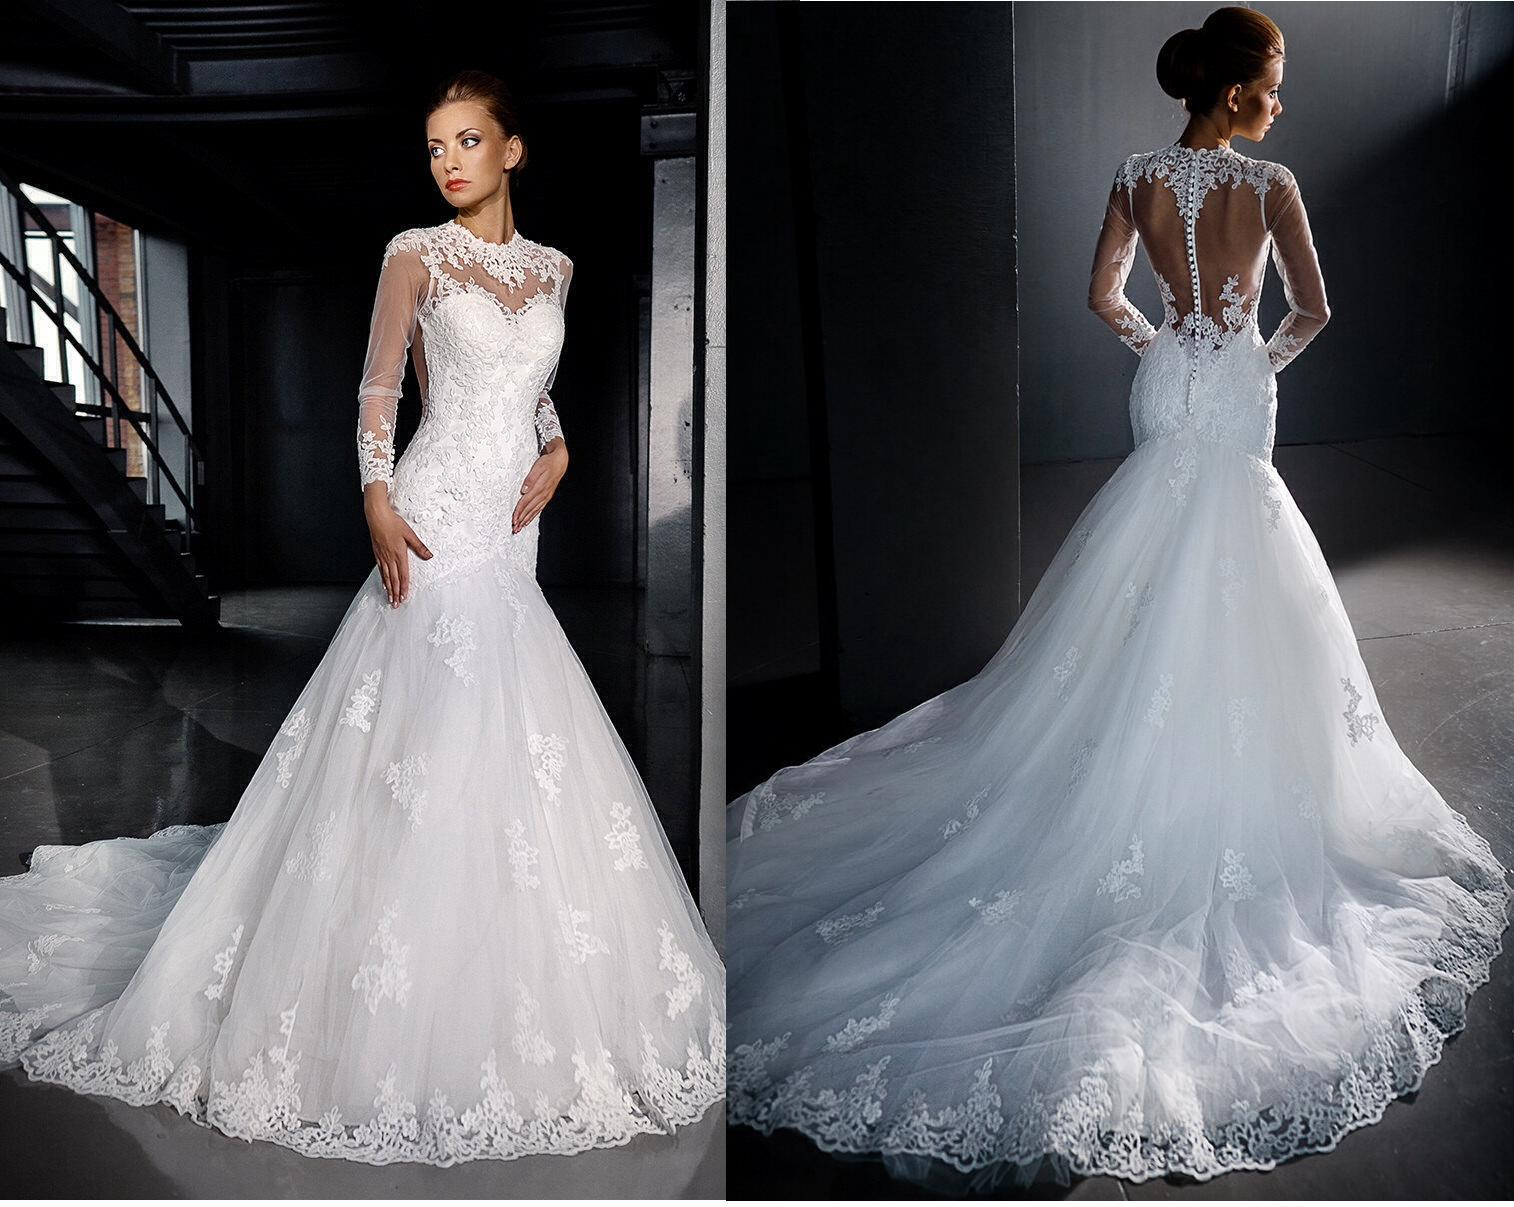 Mermaid Wedding Gowns With Sleeves